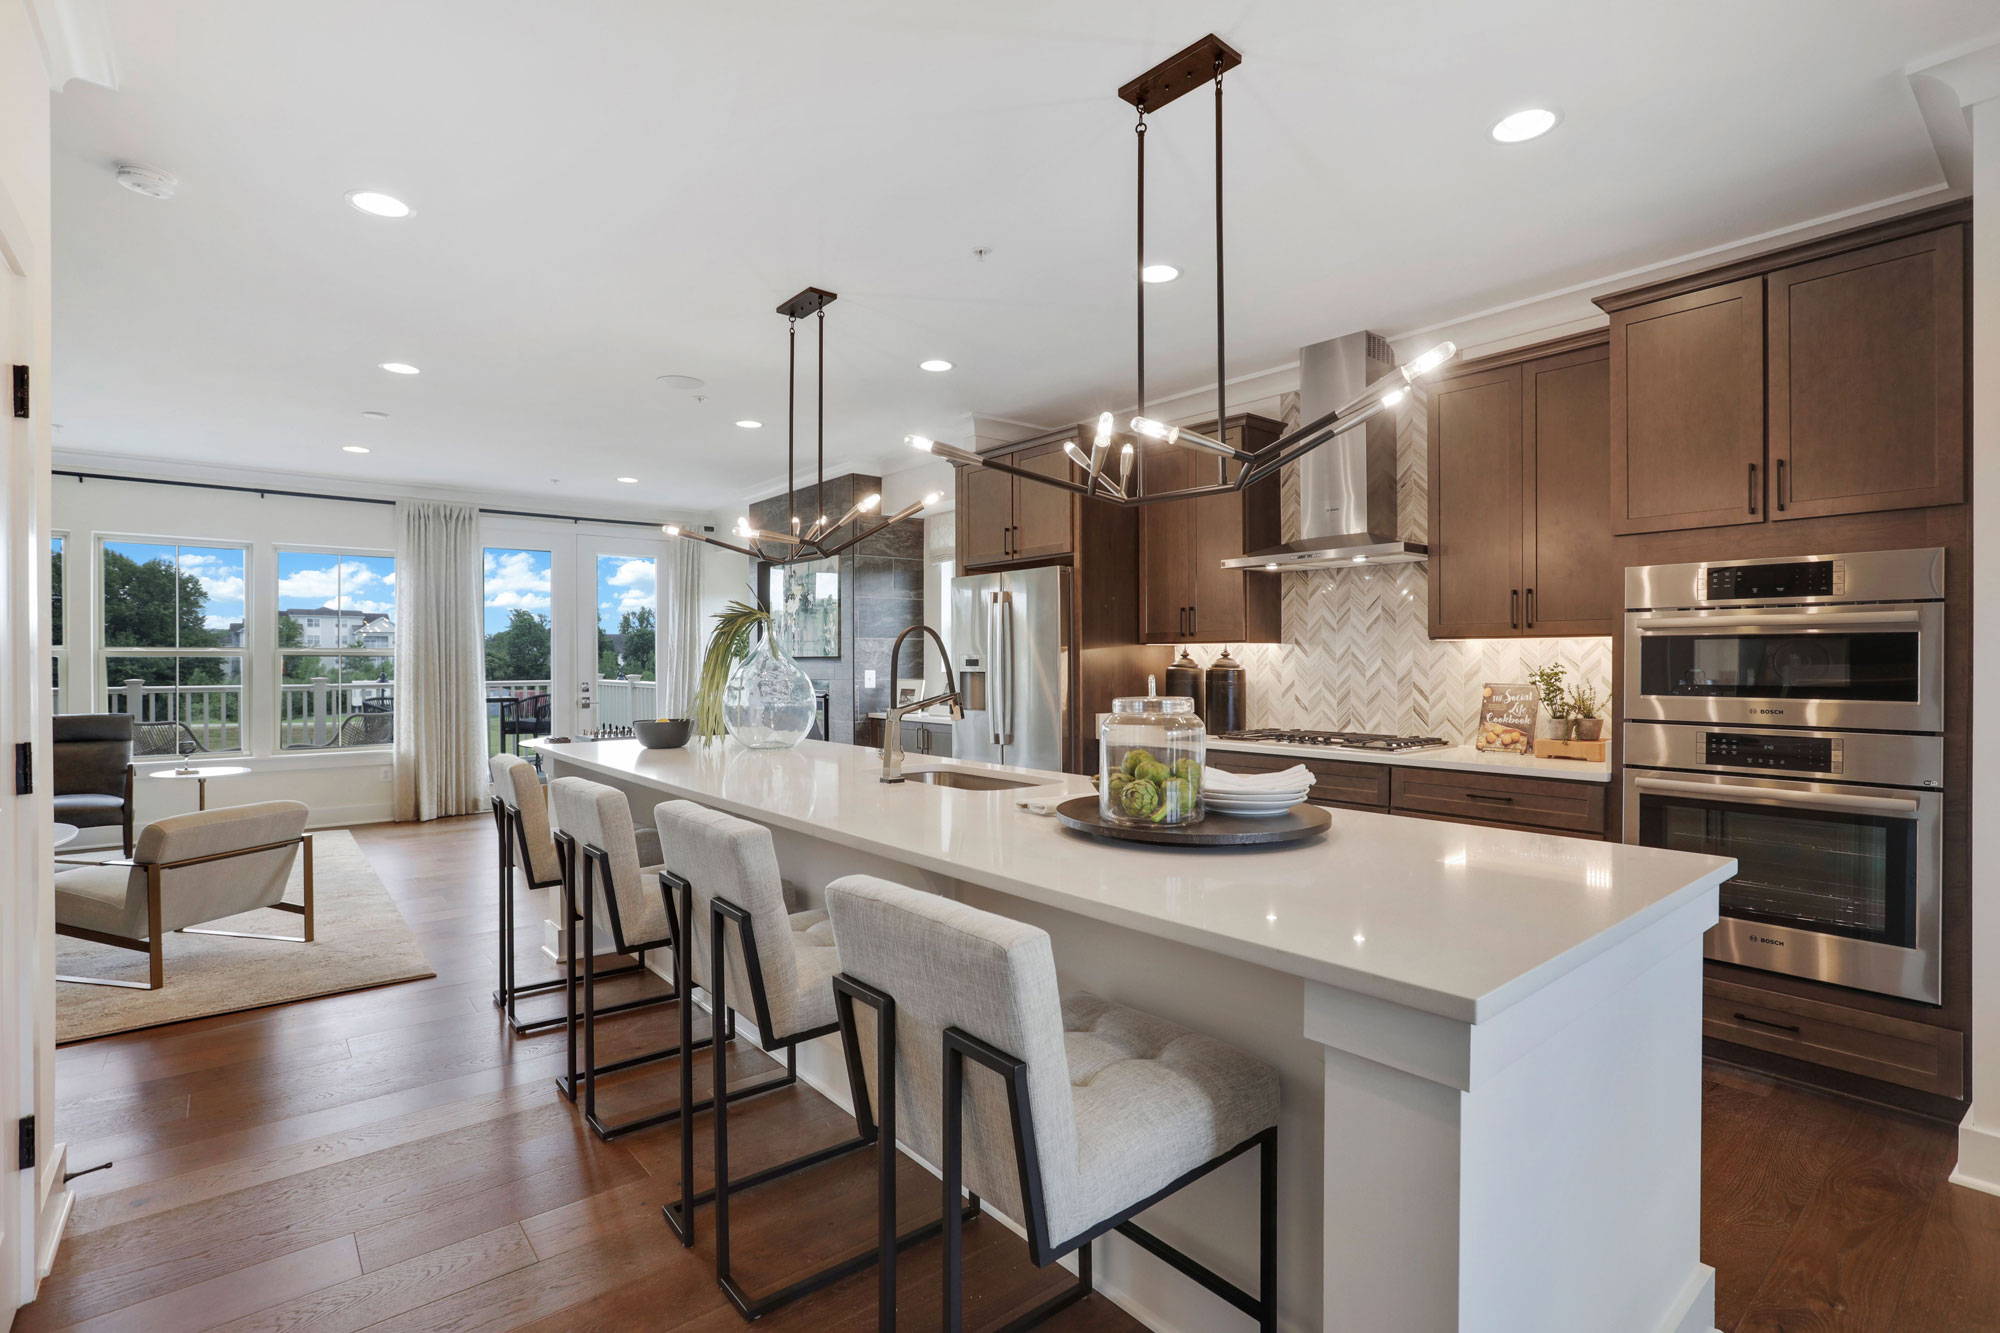 Gourmet Kitchens, Elevator Townhomes, Gaithersburg MD, Crown by Craftmark Homes